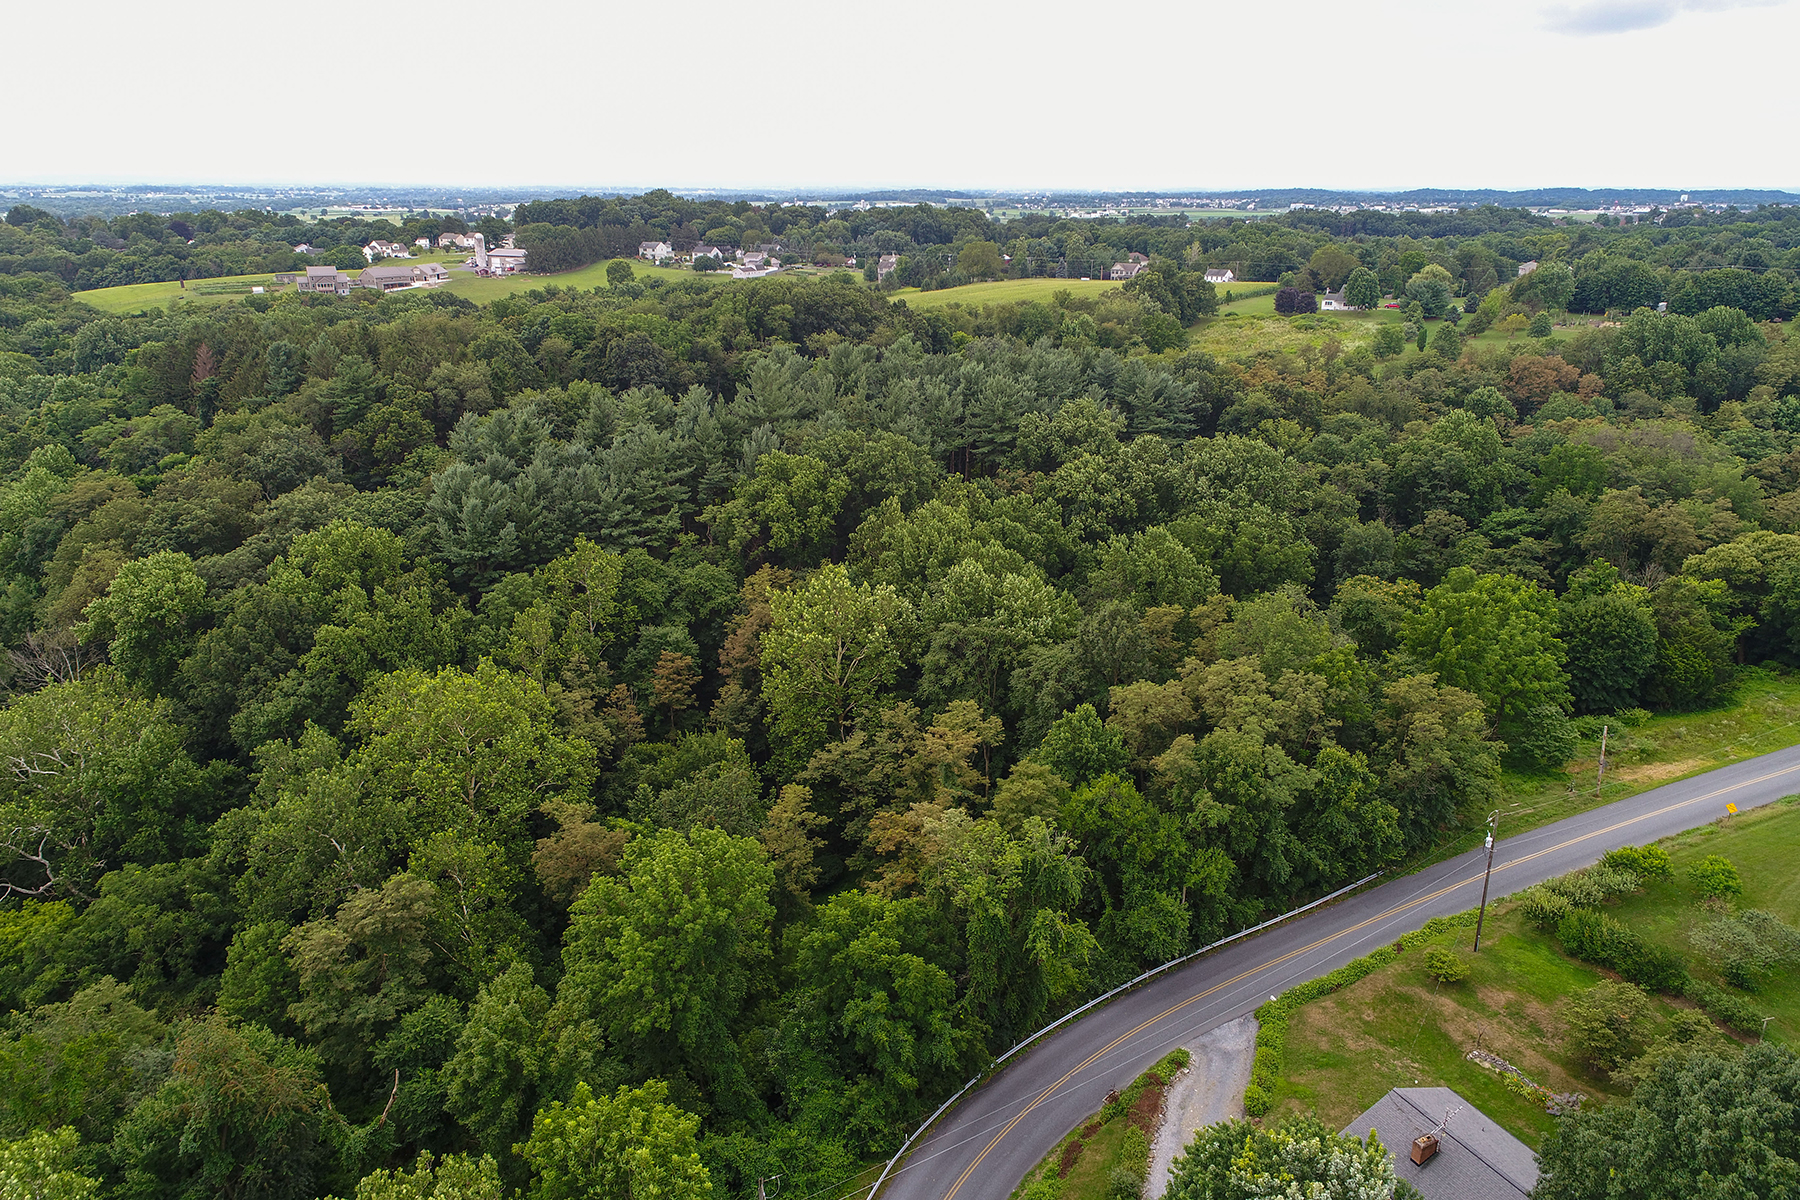 Land for Sale at 58 S. Heck Road Lititz, Pennsylvania 17543 United States